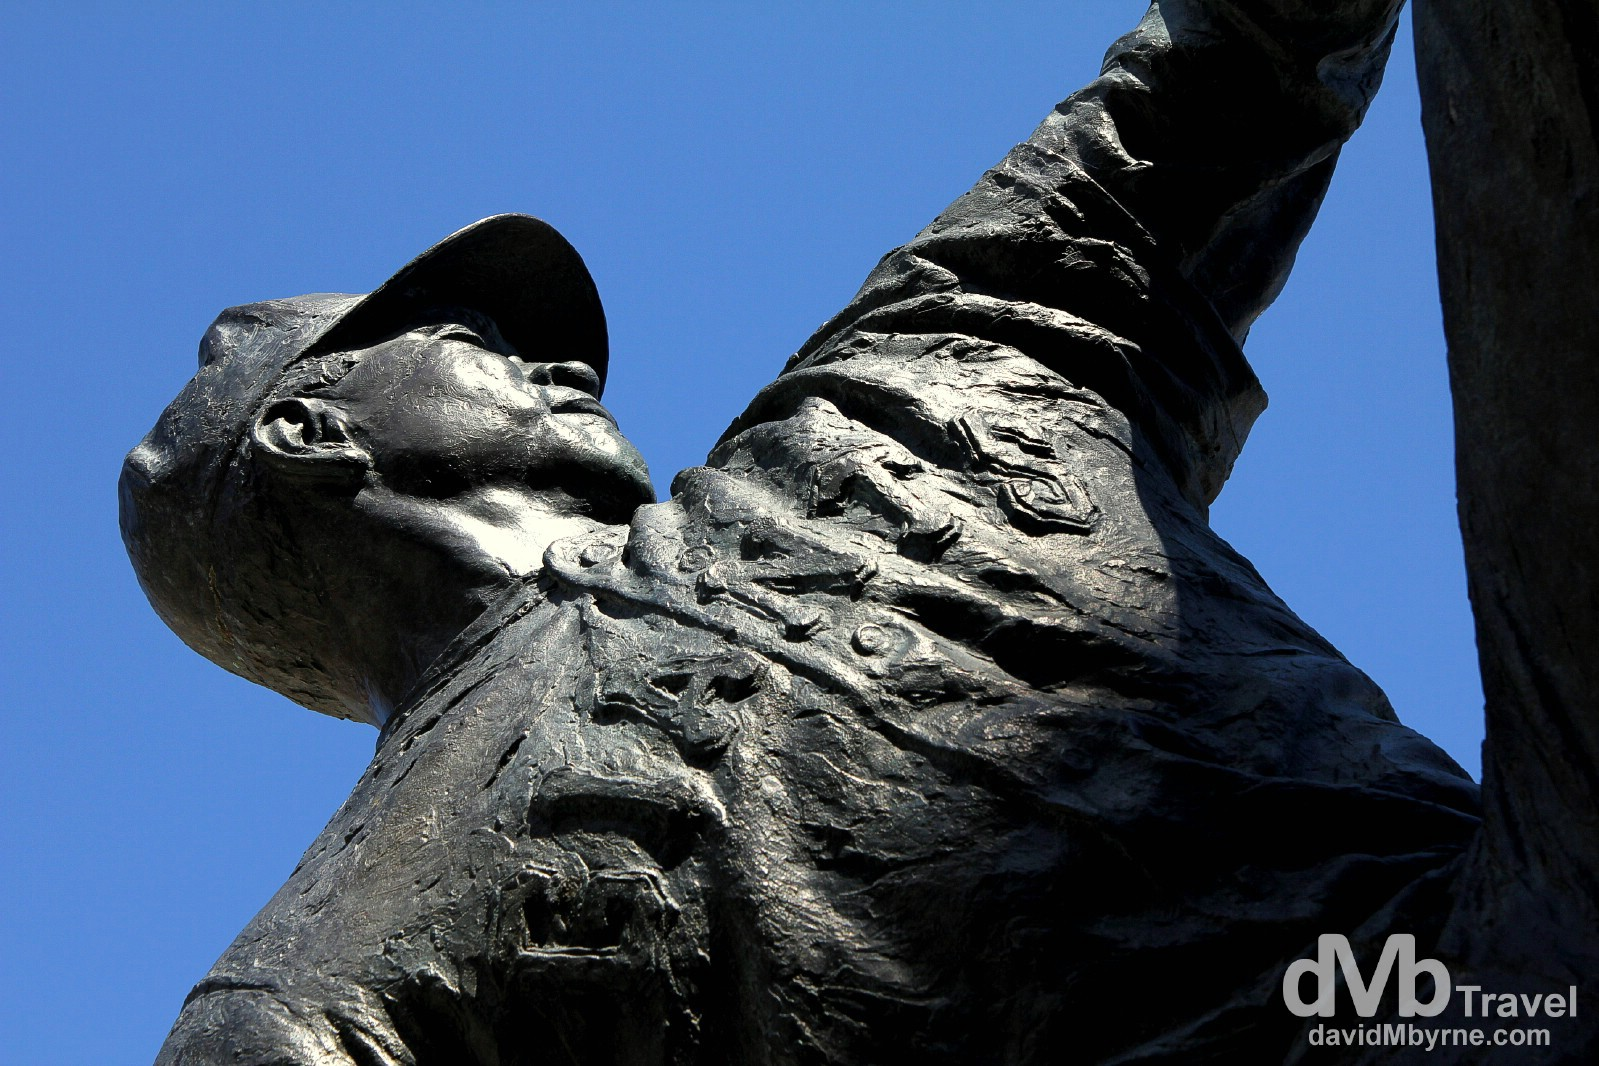 A Juan Marichal statue outside of AT&T Park, San Francisco, California, USA. March 30th 2013.